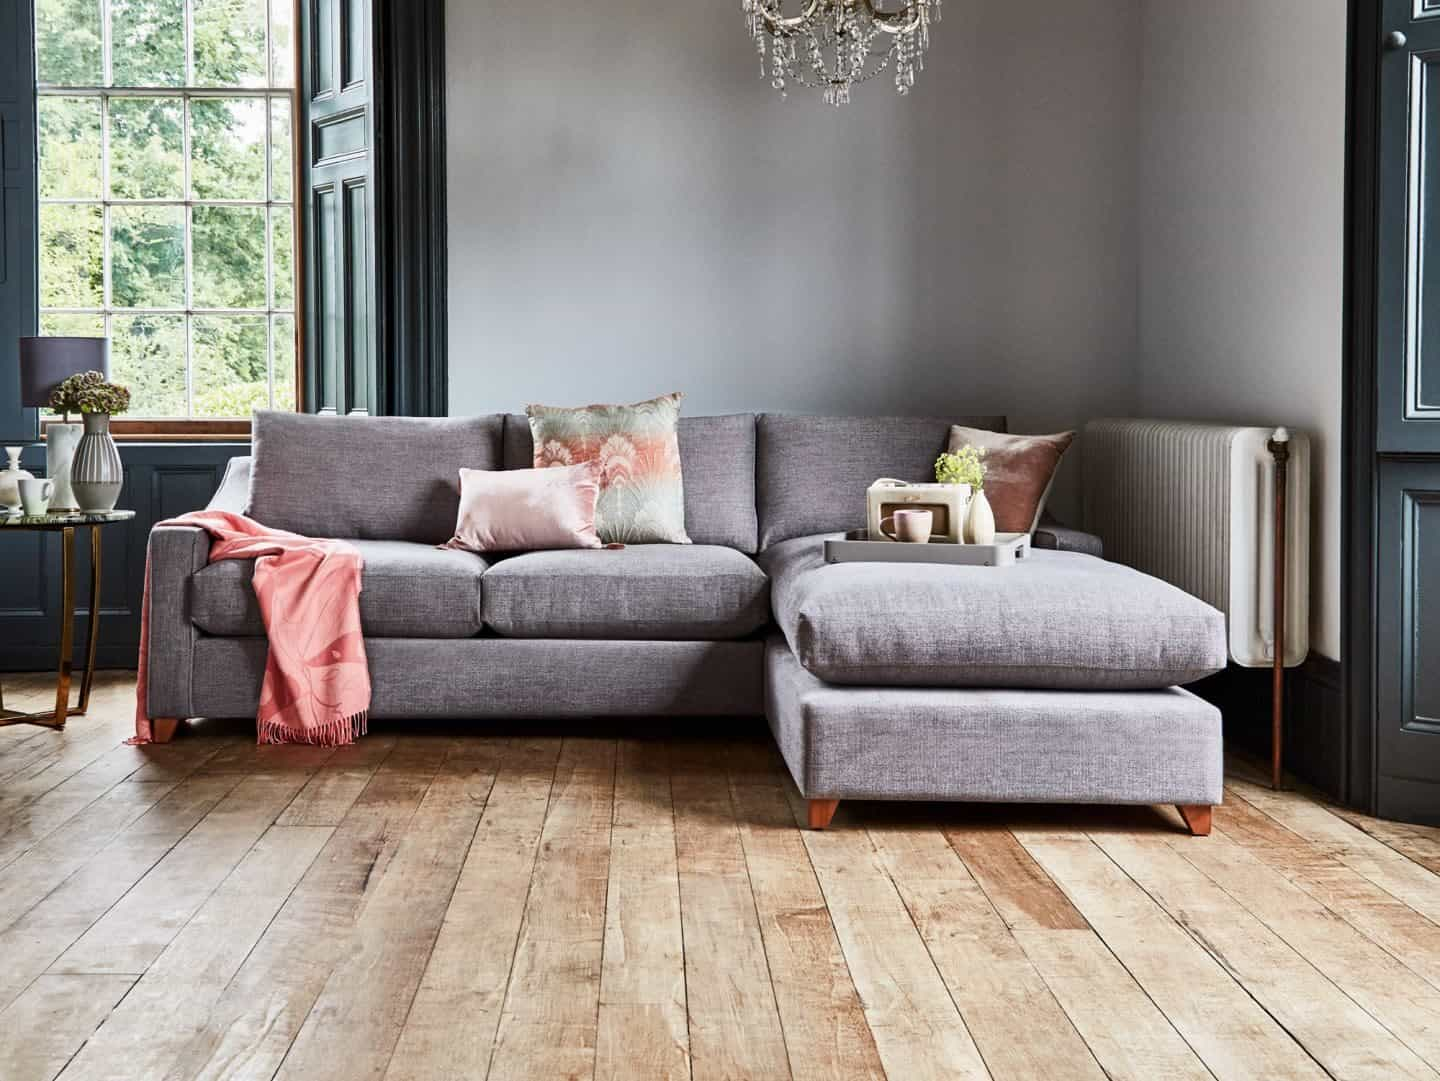 How to choose perfect fabric for furniture. Willow & Hall - Alton Chaise Sofa-2